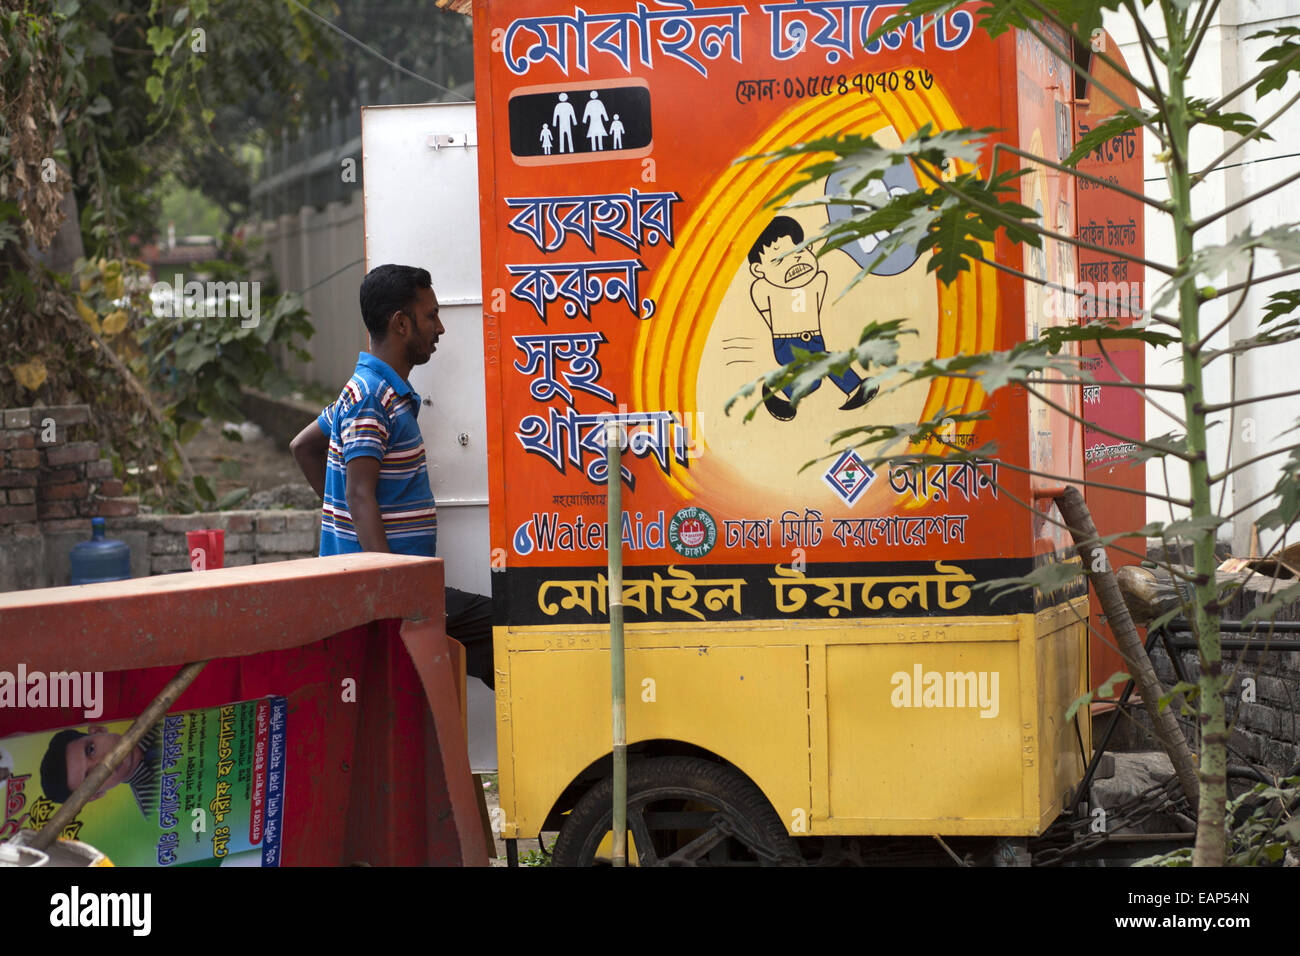 dhaka bangladesh 19th nov 2014 people uses itinerant mobile stock photo royalty free image. Black Bedroom Furniture Sets. Home Design Ideas